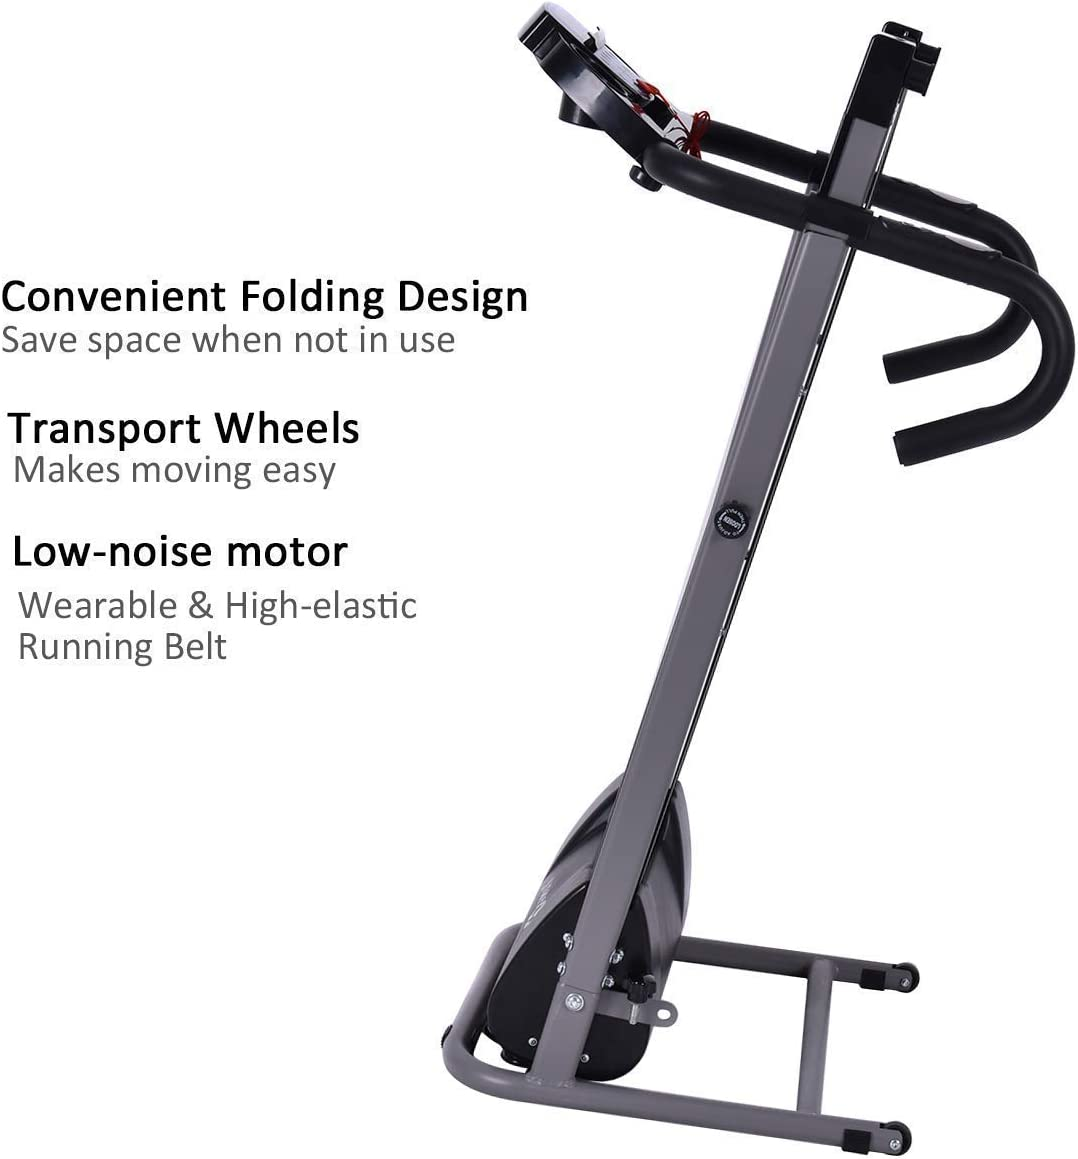 Goplus Electric Folding Treadmill, Compact Running Machine with LCD Display and Pad Holder, Ideal for Home Use